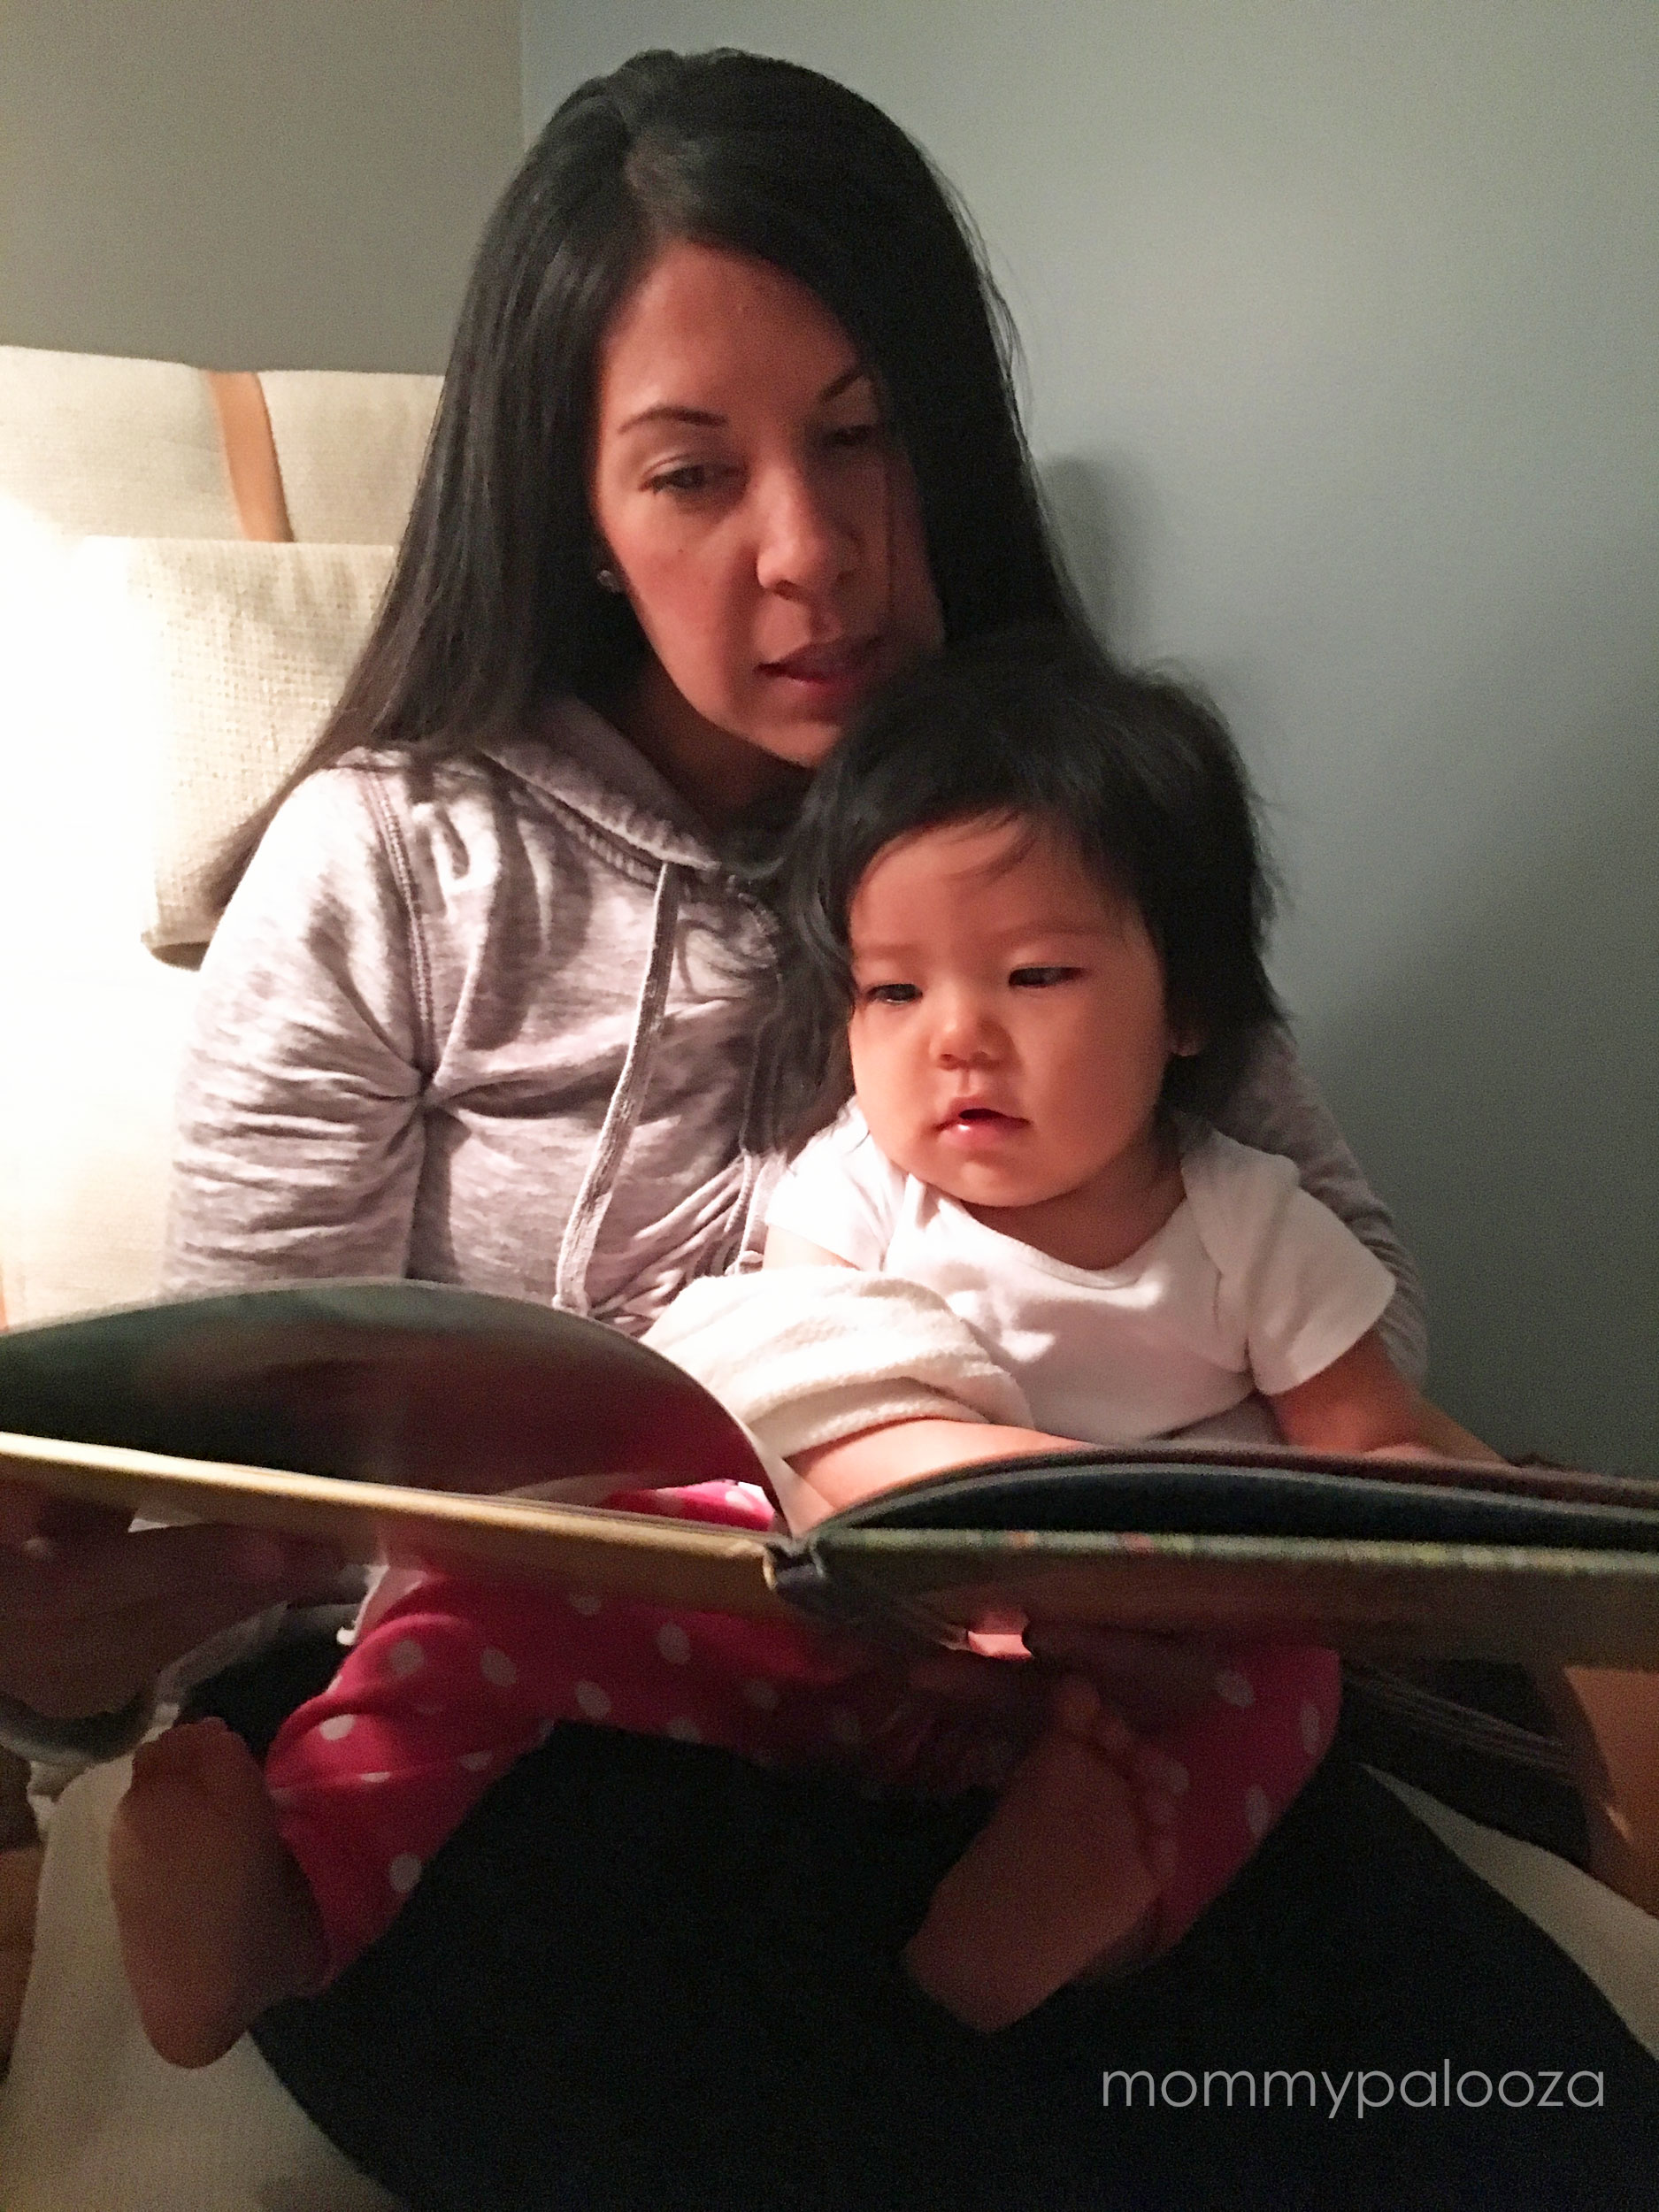 mommypalooza and baby reading a book